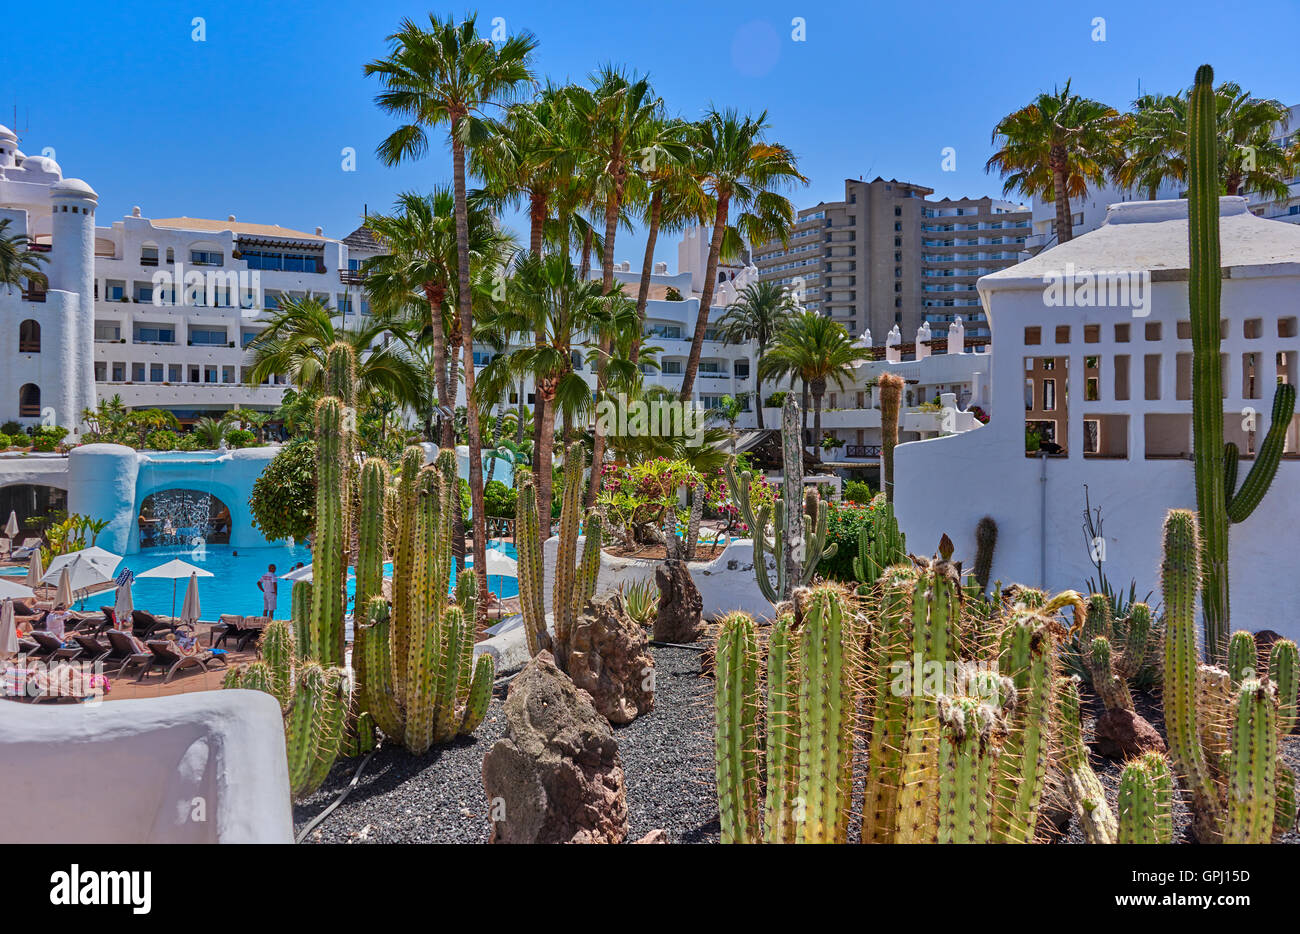 Hotel jardin tropical costa adeje tenerife stock photo for Jardin tropical